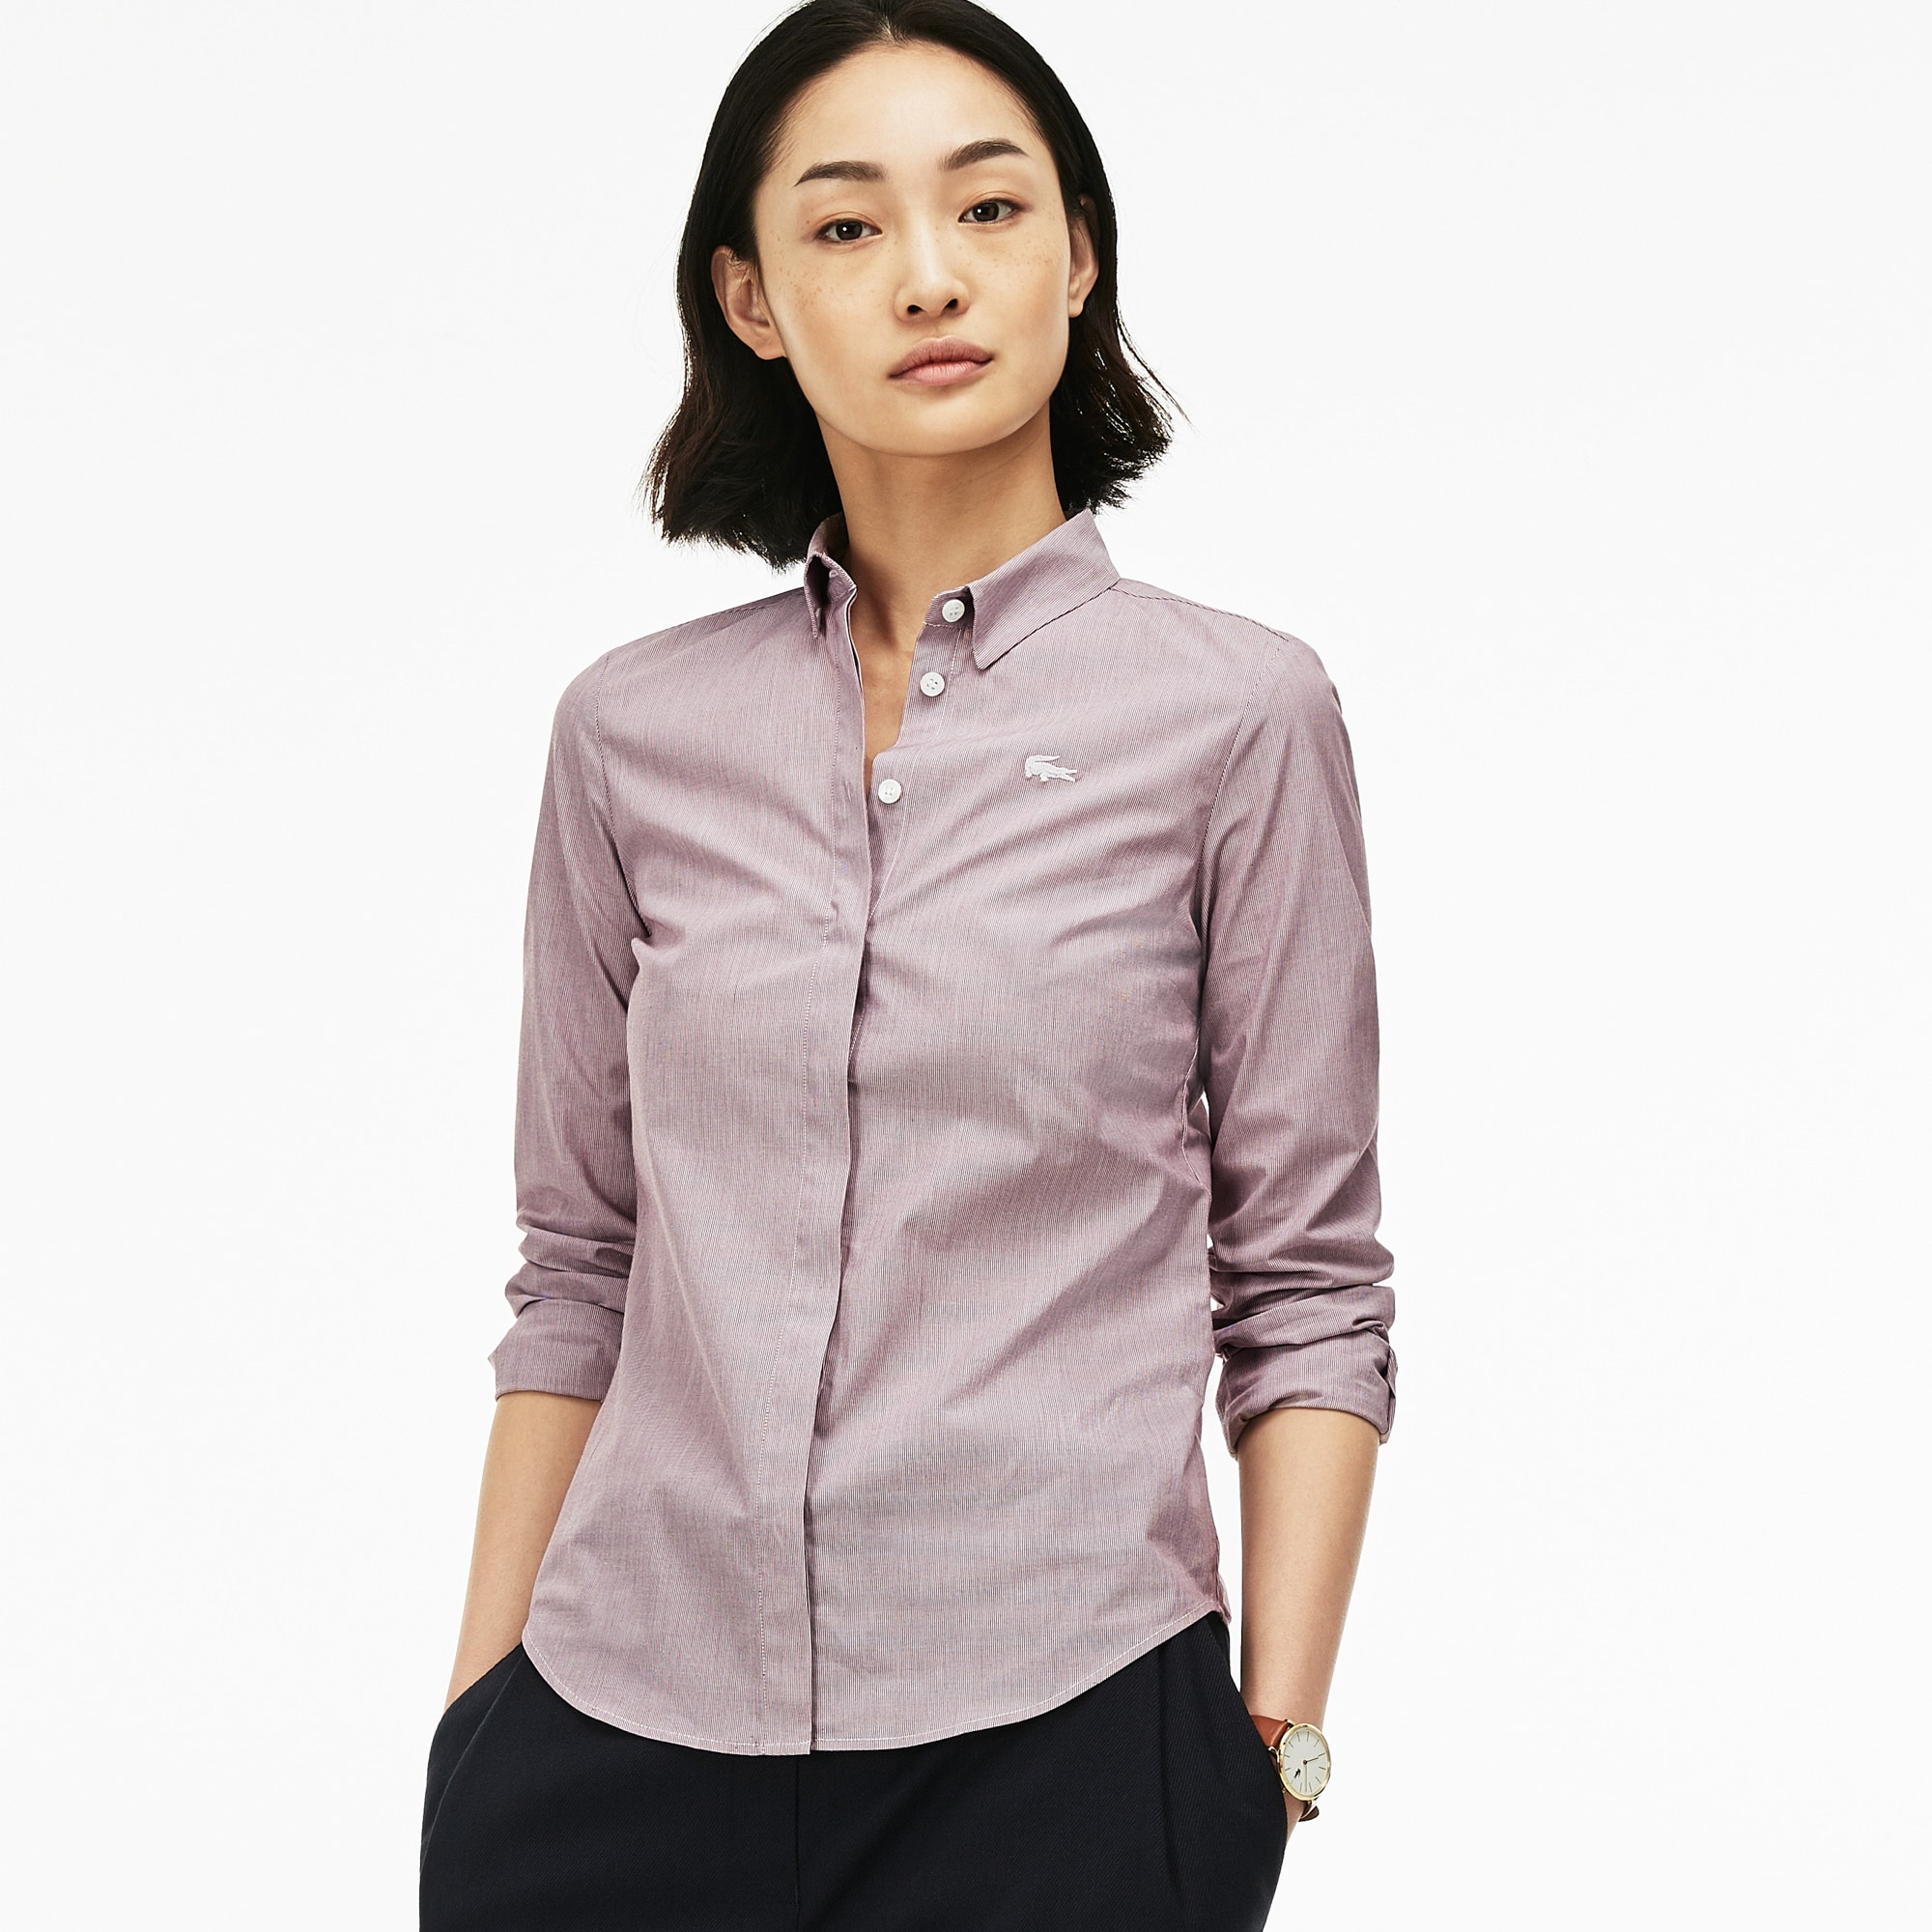 Women's Shirts | Women's Tops | LACOSTE